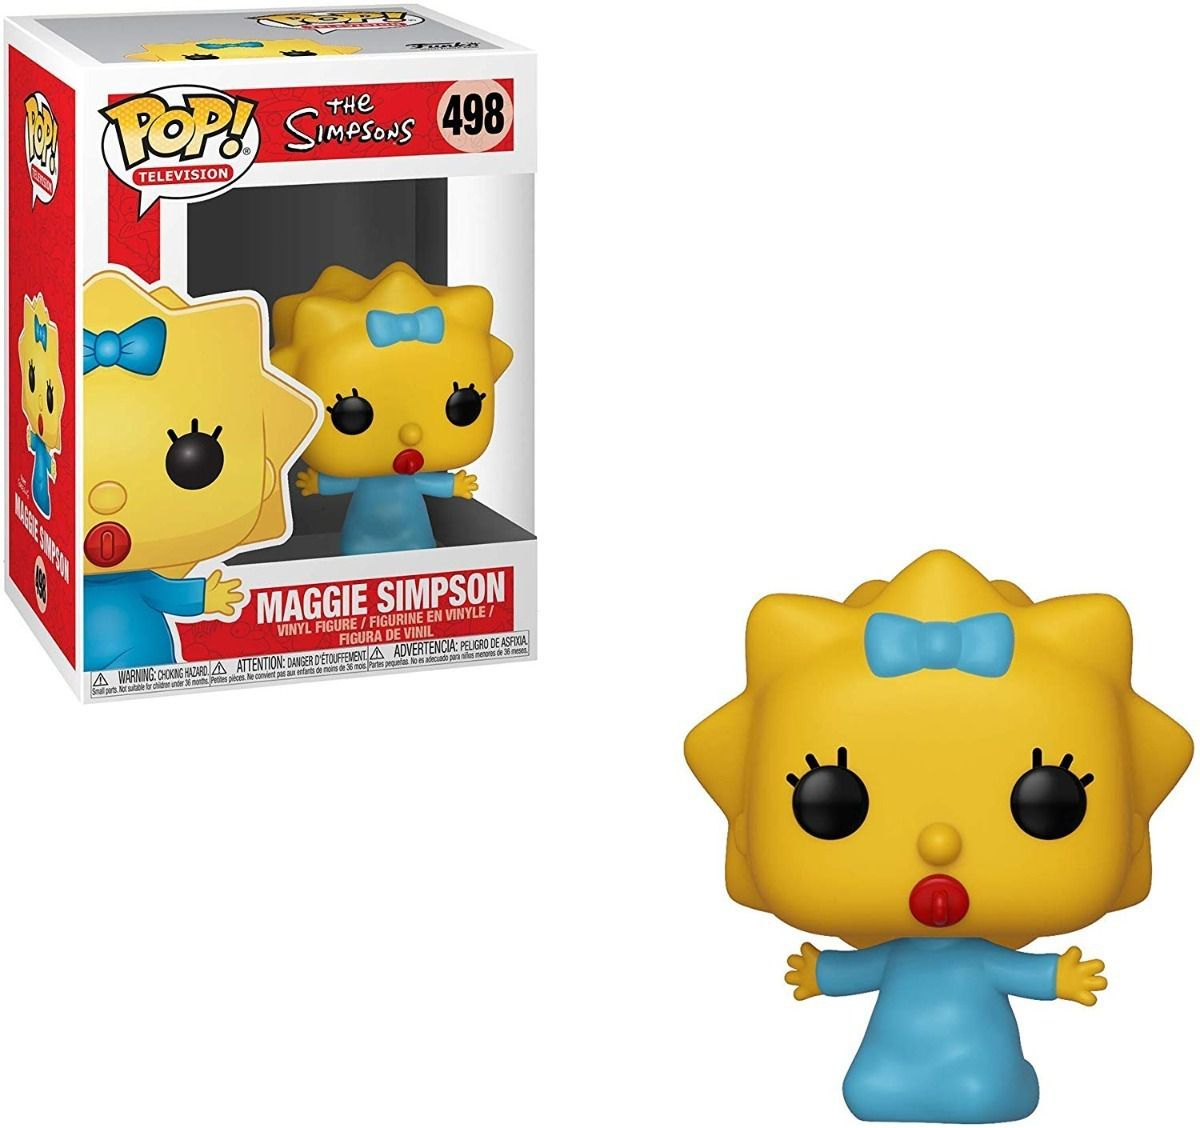 Maggie Simpsons #498 - The Simpsons - Funko Pop! Television